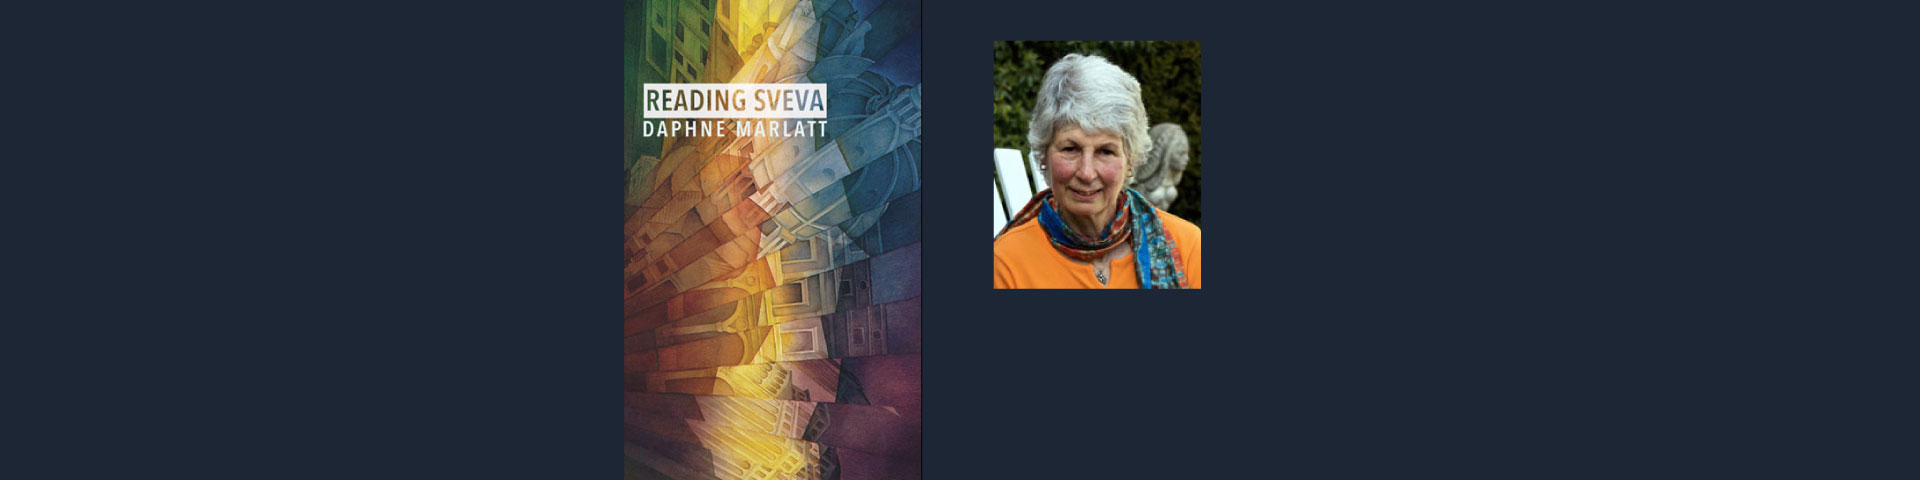 Daphne Marlatt, Reading Sveva Poetry Reading, Saturday, October 15, 7 - 9 pm Caetani Centre, book Launch by Talon Books